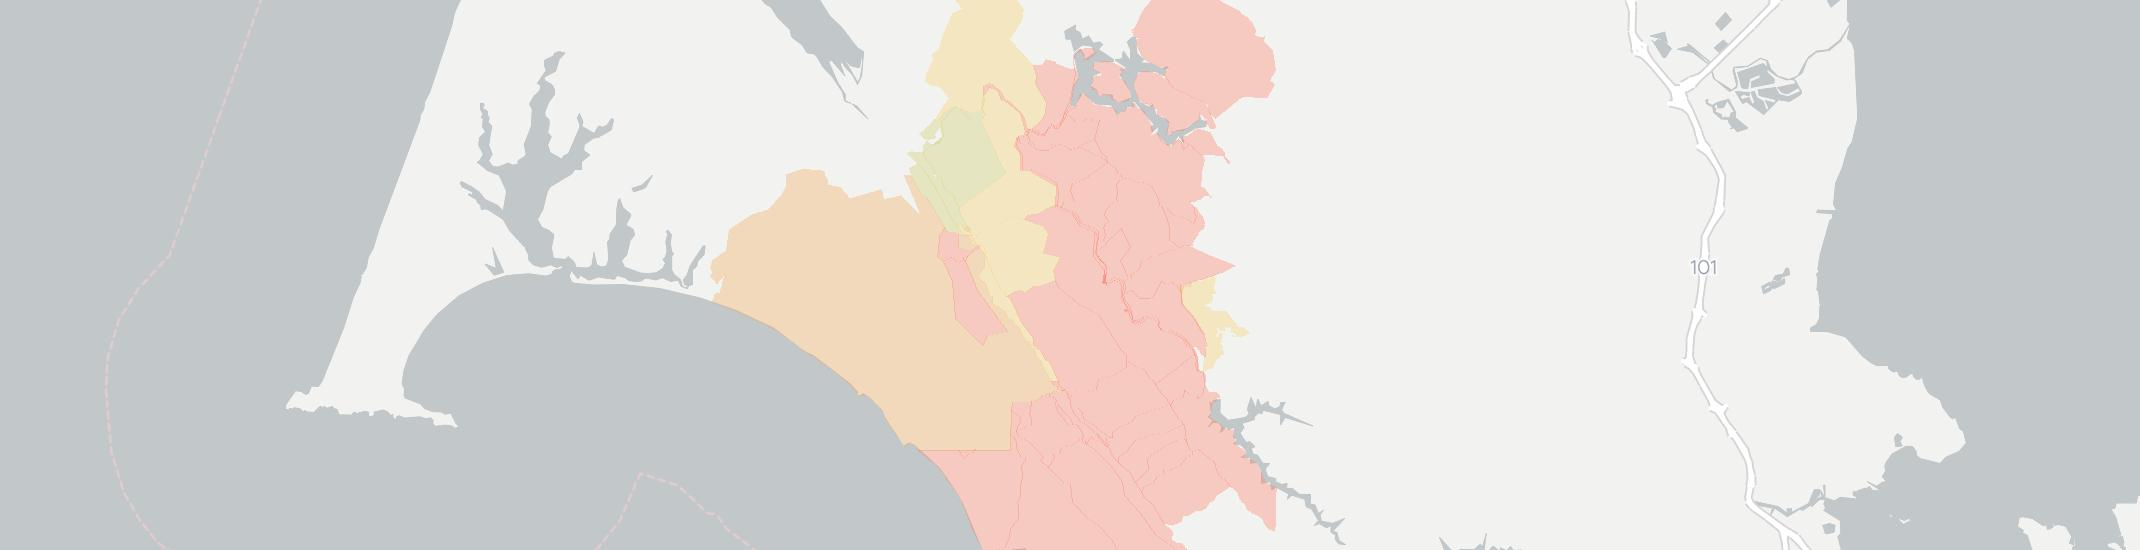 Olema Internet Competition Map. Click for interactive map.